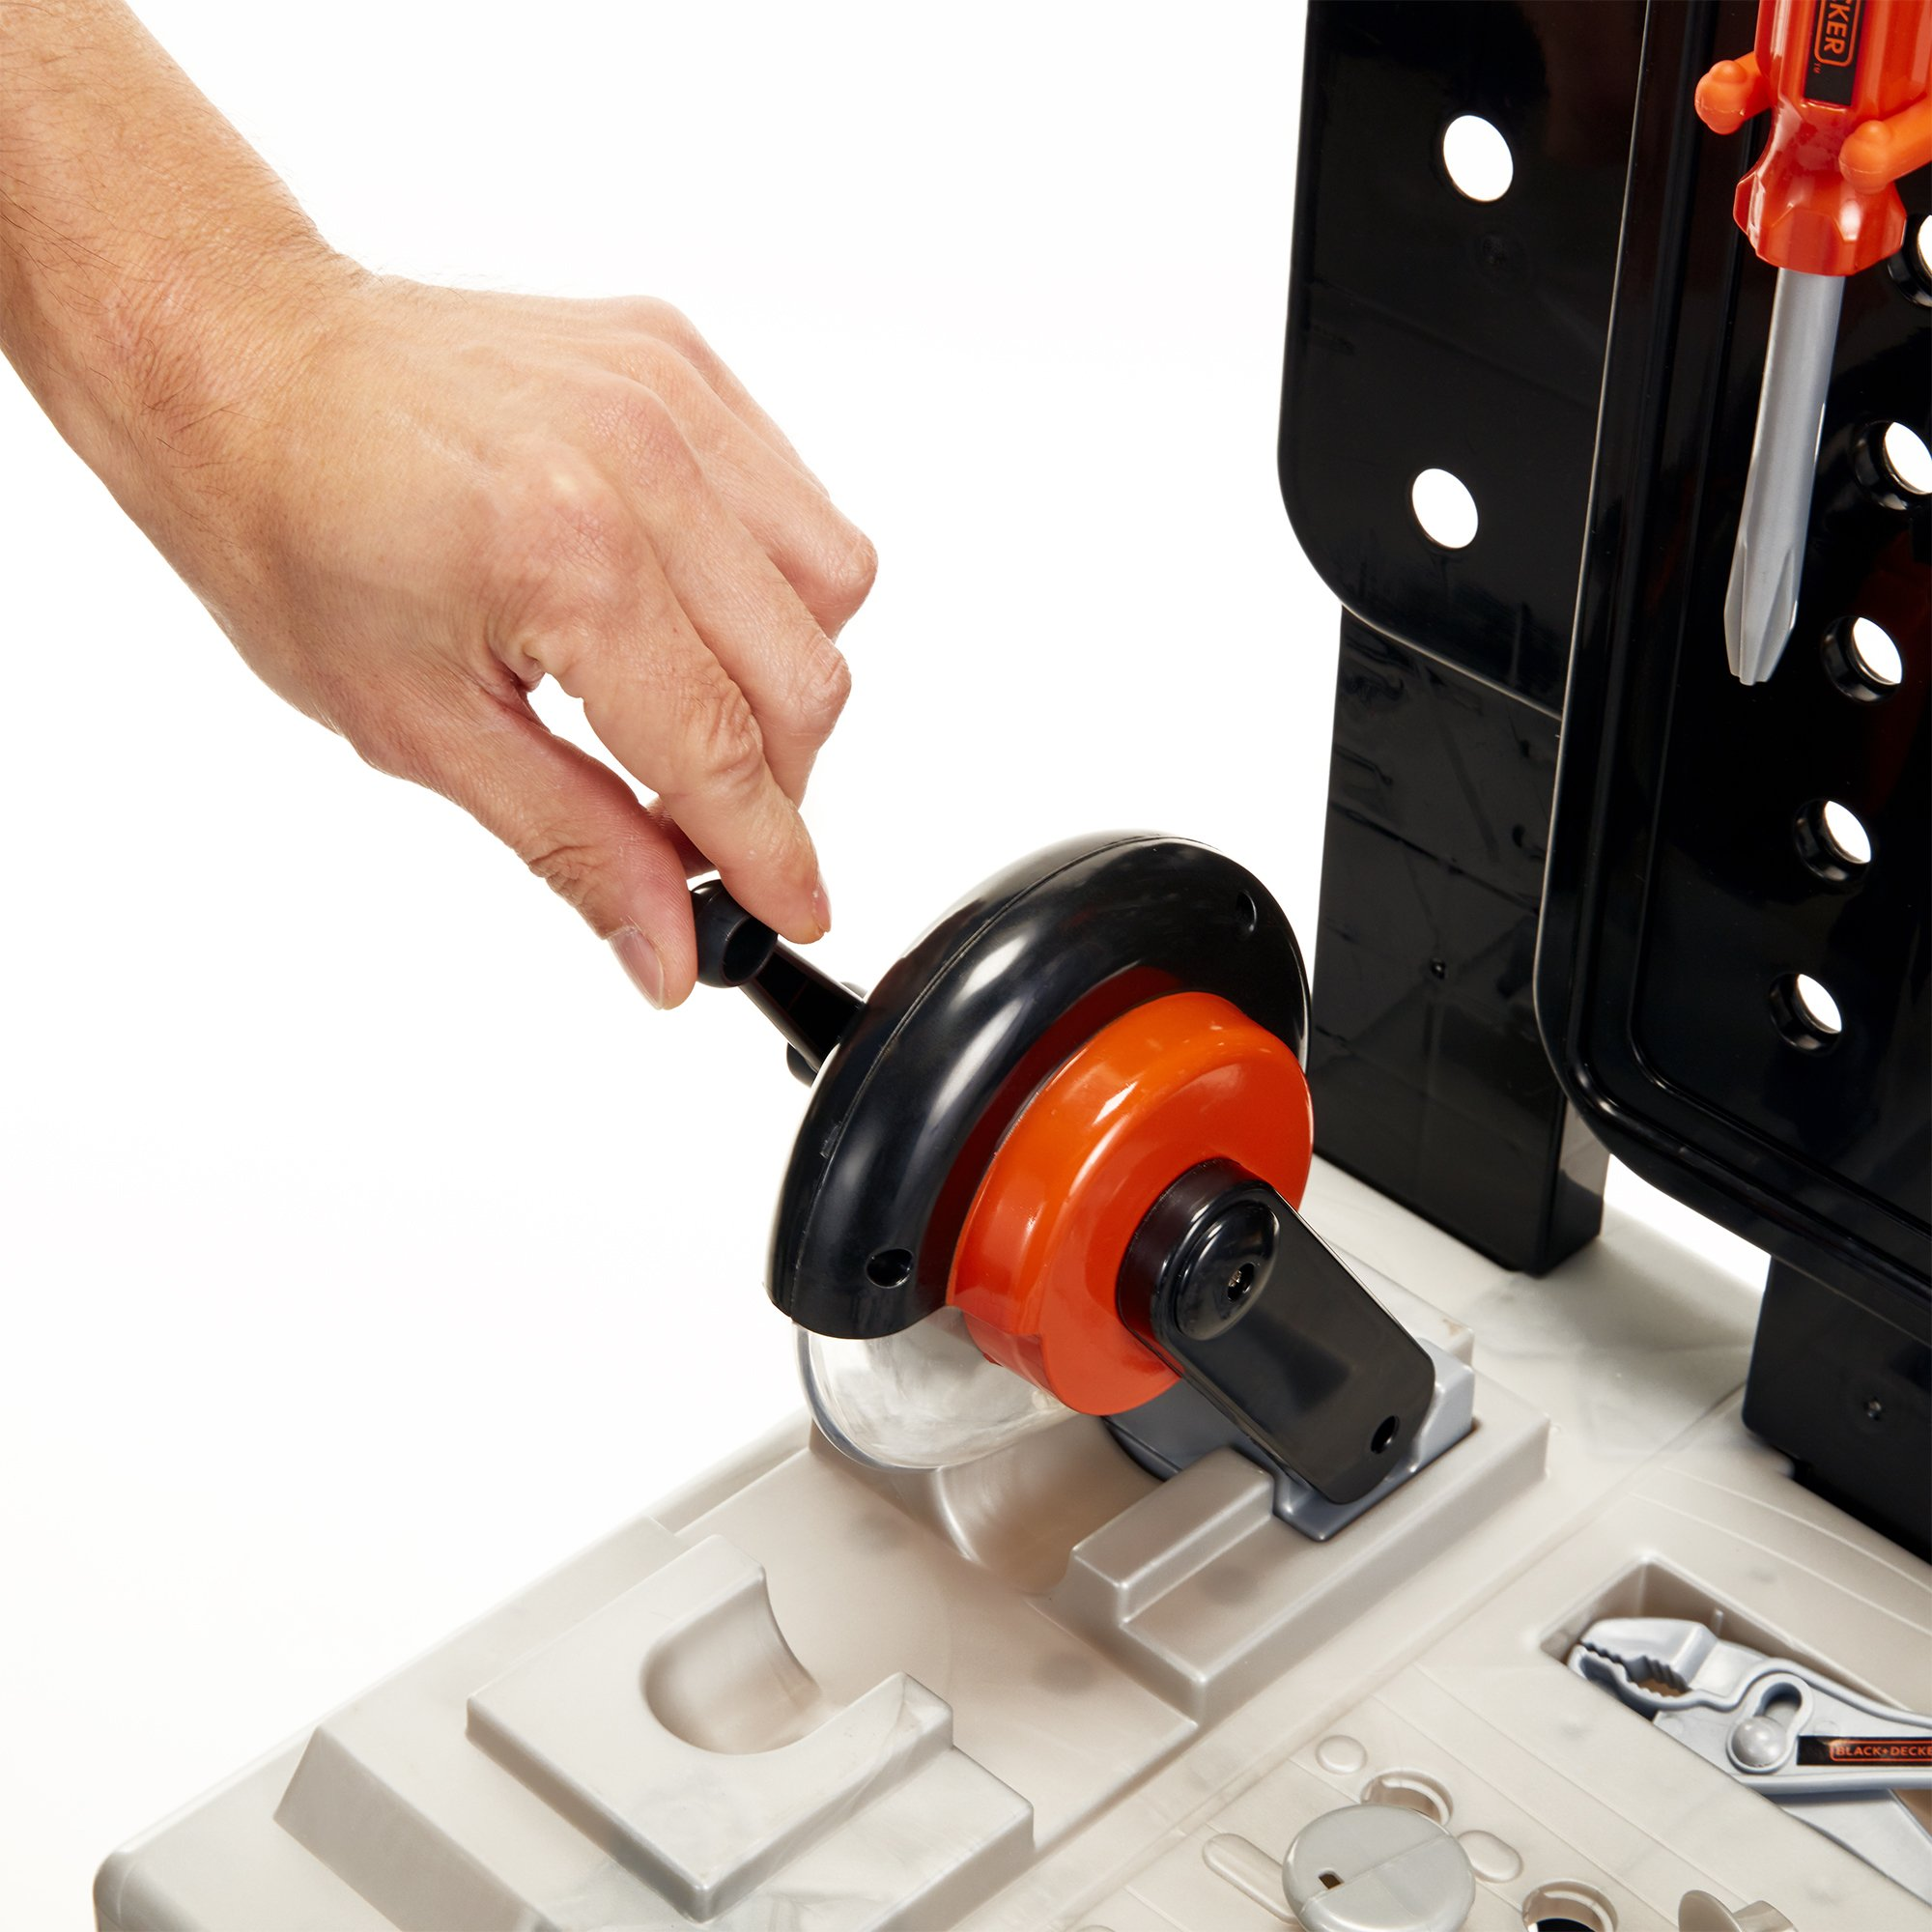 BLACK+DECKER 71382 Jr. Mega Power N' Play Workbench with Realistic Sounds! - 52 Tools & Accessories by BLACK+DECKER (Image #2)